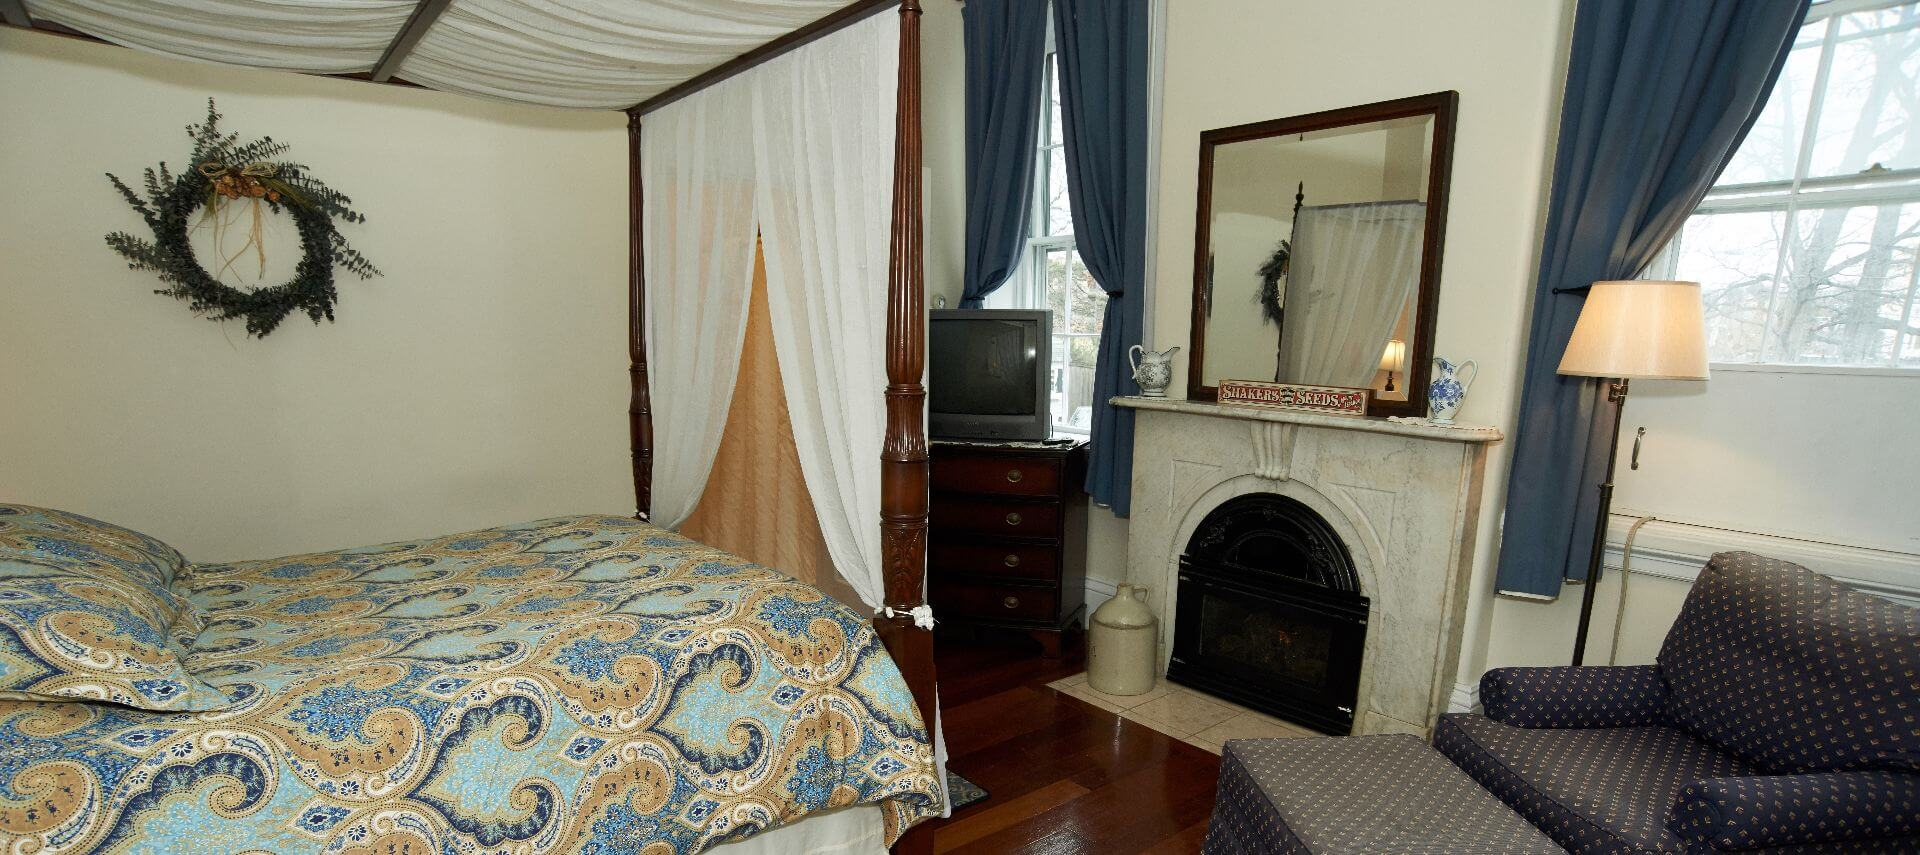 Queen canopy bed faces a white fireplace with a mirror over it and a dresser with a TV.